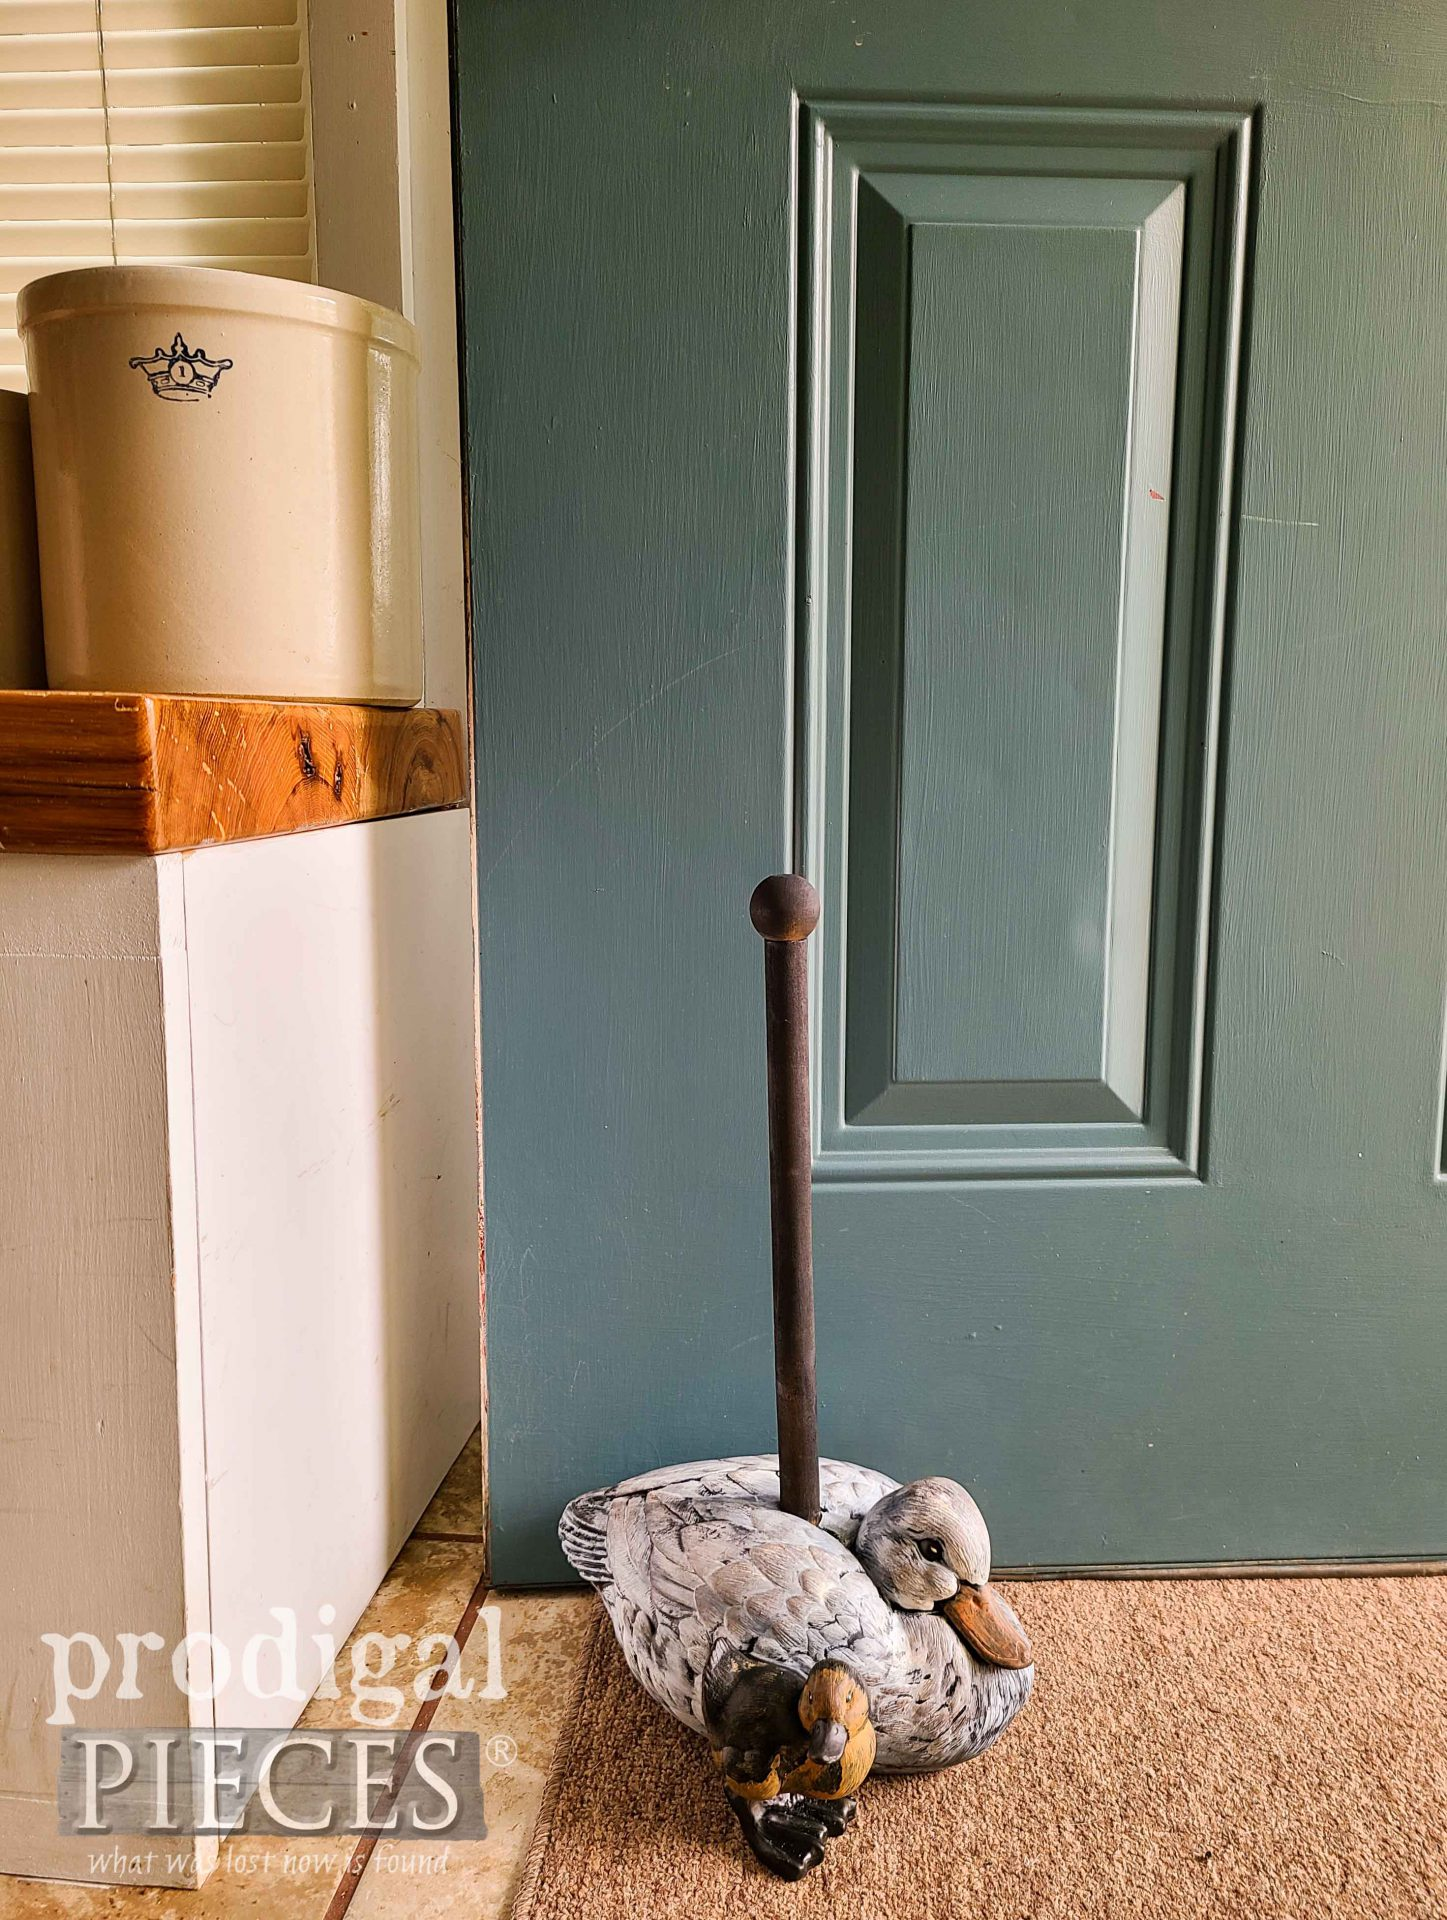 Farmhouse Duck Upcycled Doorstop by Larissa of Prodigal Pieces | prodigalpieces.com #prodigalpieces #diy #home #upcycled #farmhouse